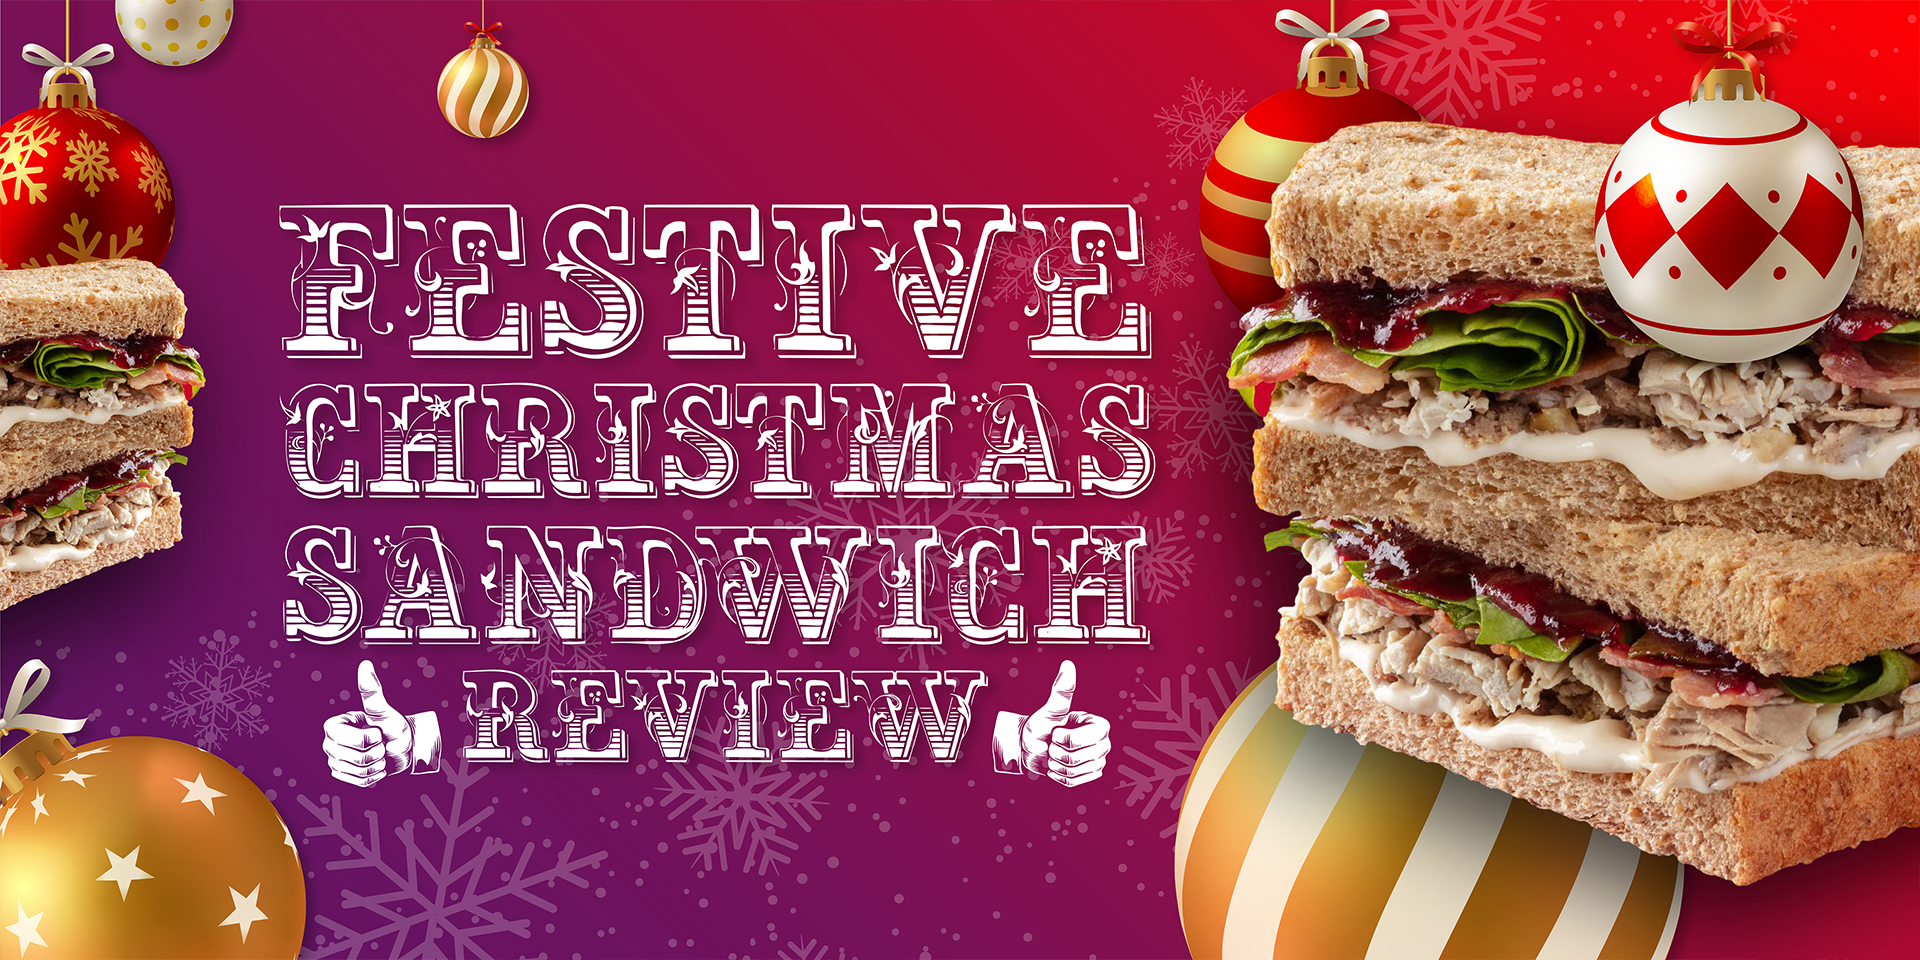 Christmas Sandwich Review – Sainsbury's vs Boots image